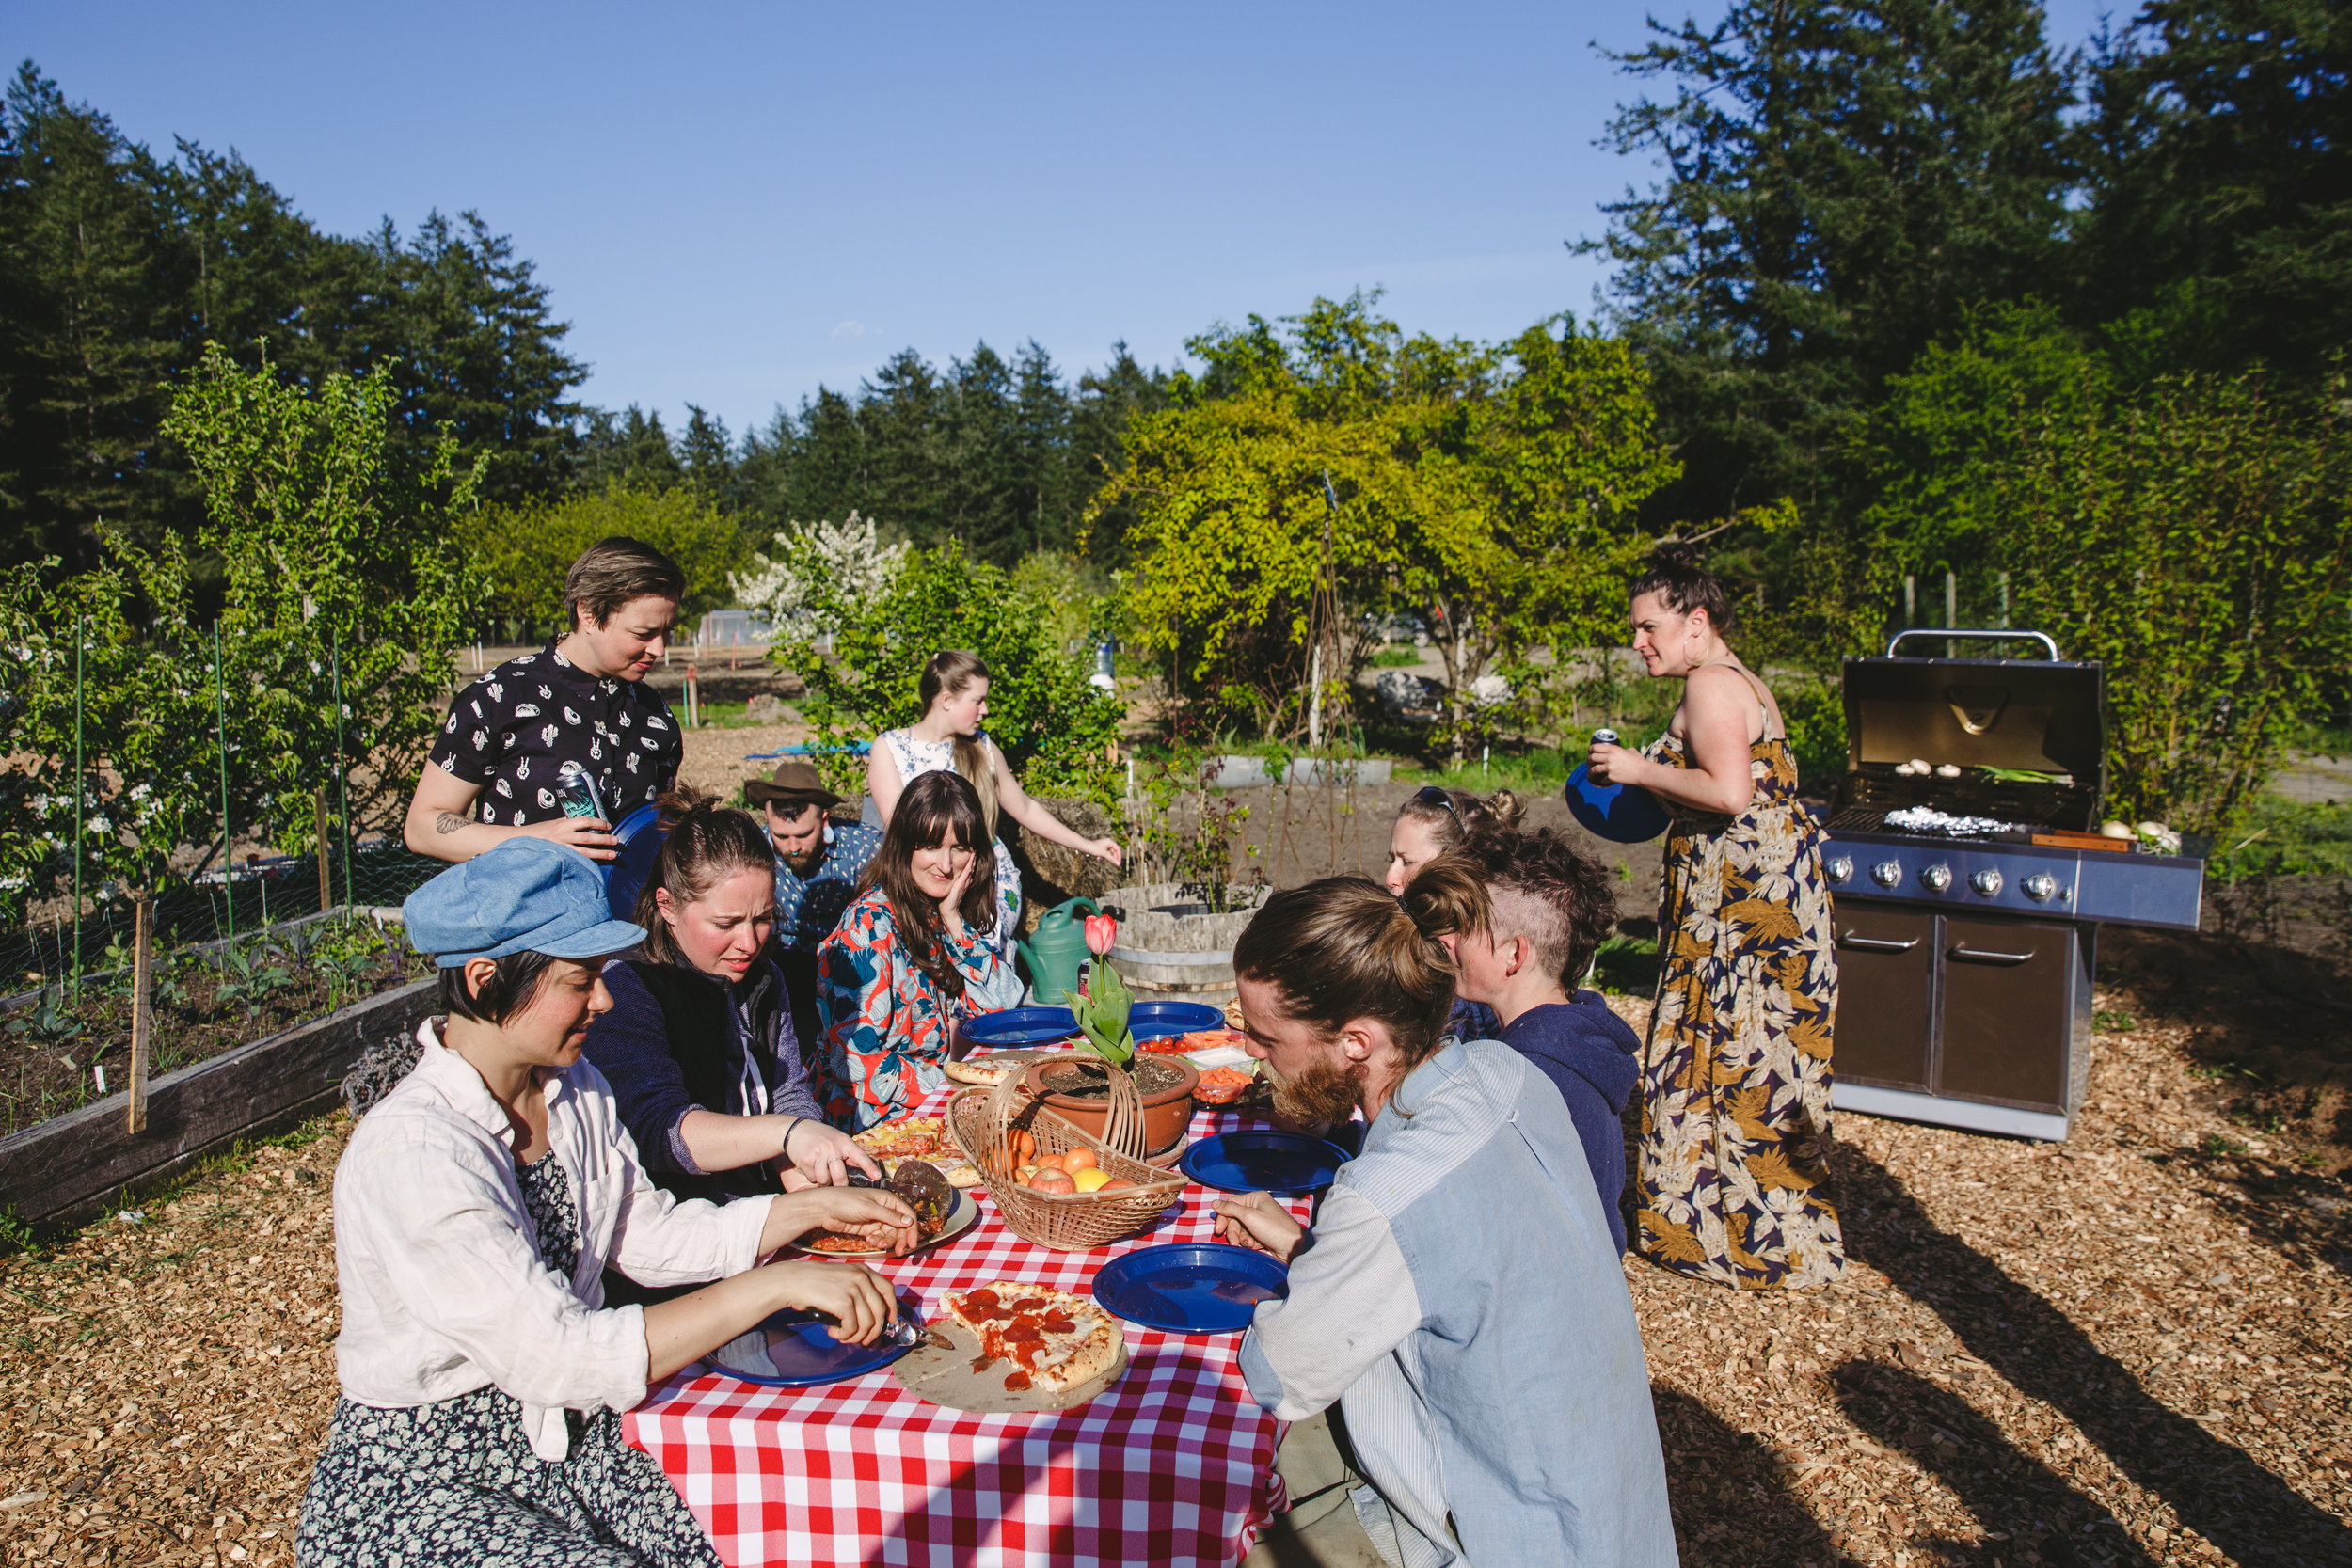 Connect - The farm is part of our desire to build community. Gardening is calming, it brings people outdoors, it teaches them where food comes from, and it allows them to make healthy connections with one another and with the land and garden.